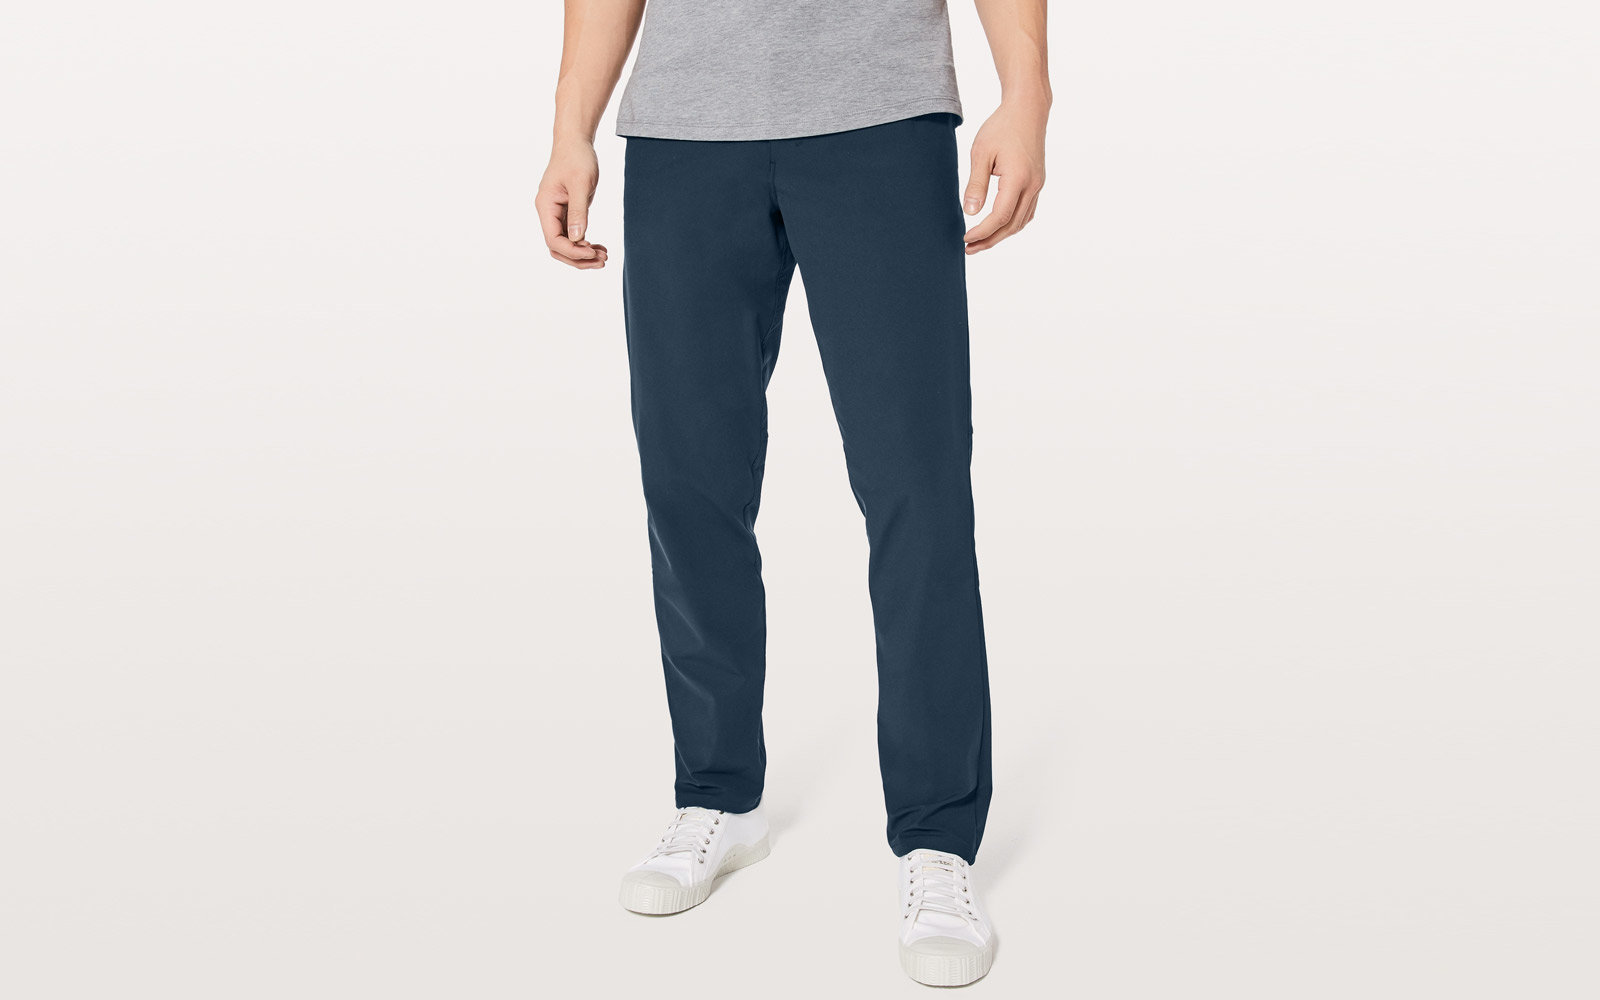 lululemon mens travel pants